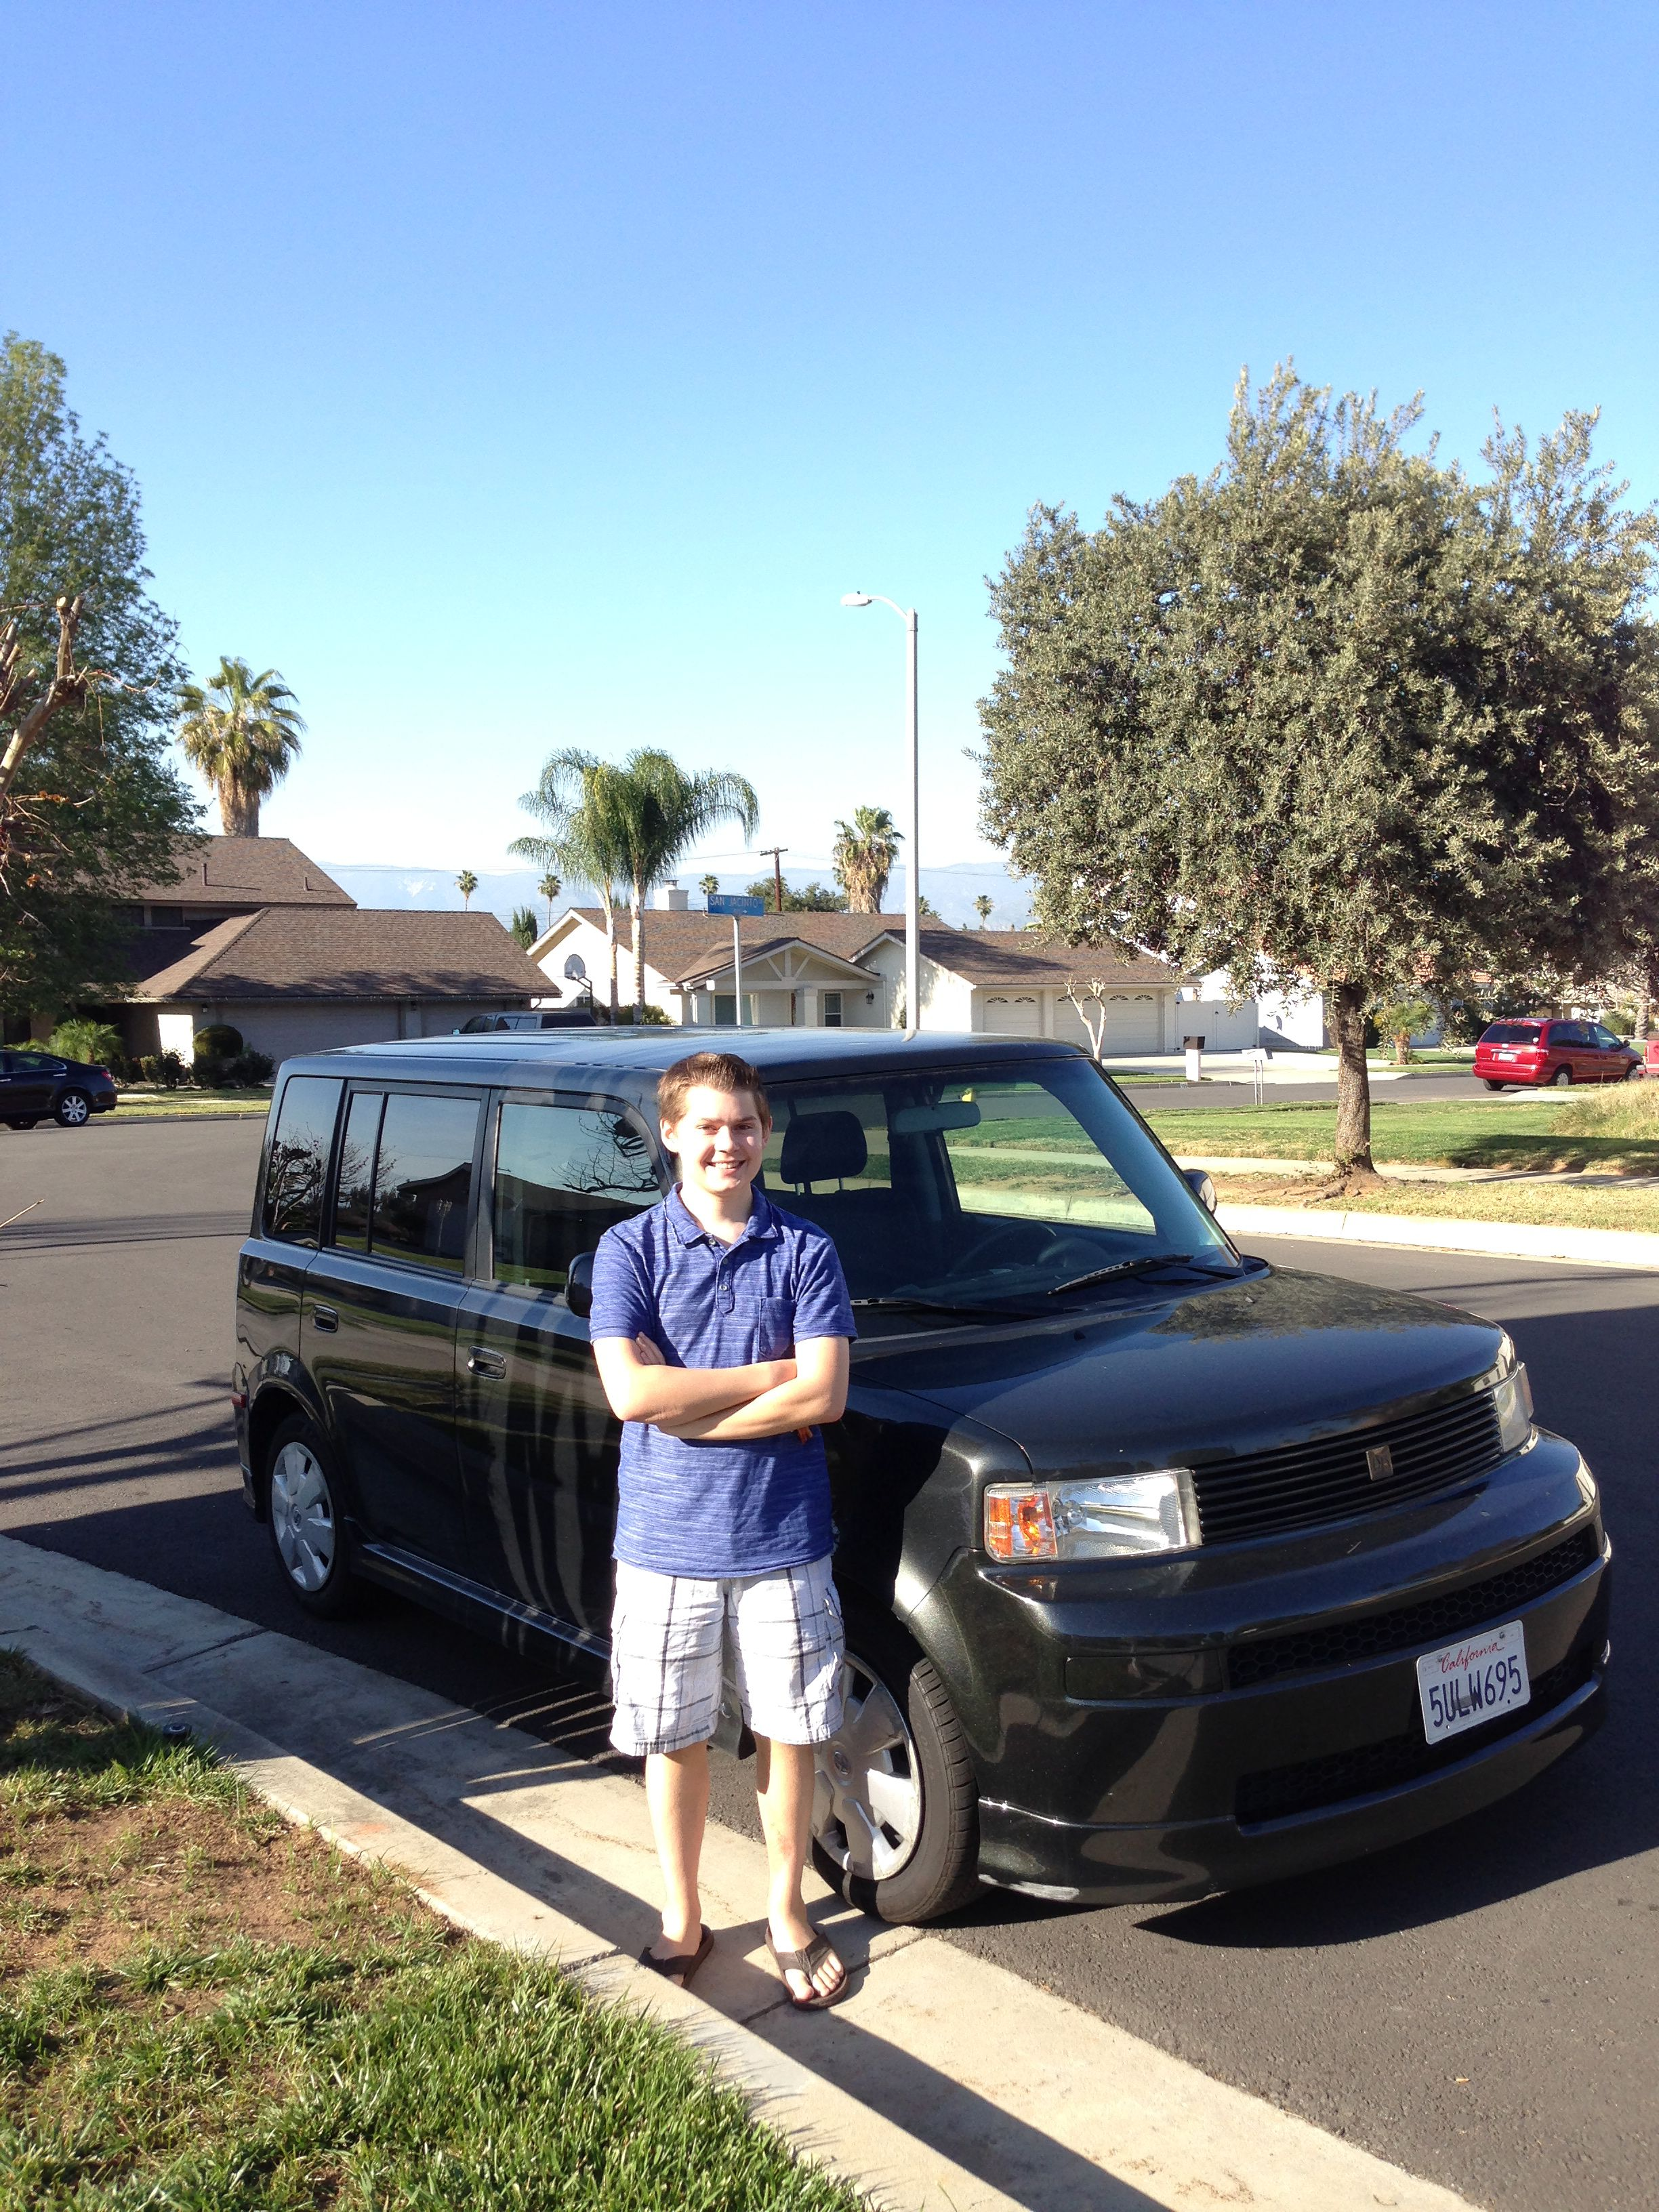 Blake with his Scion xB!